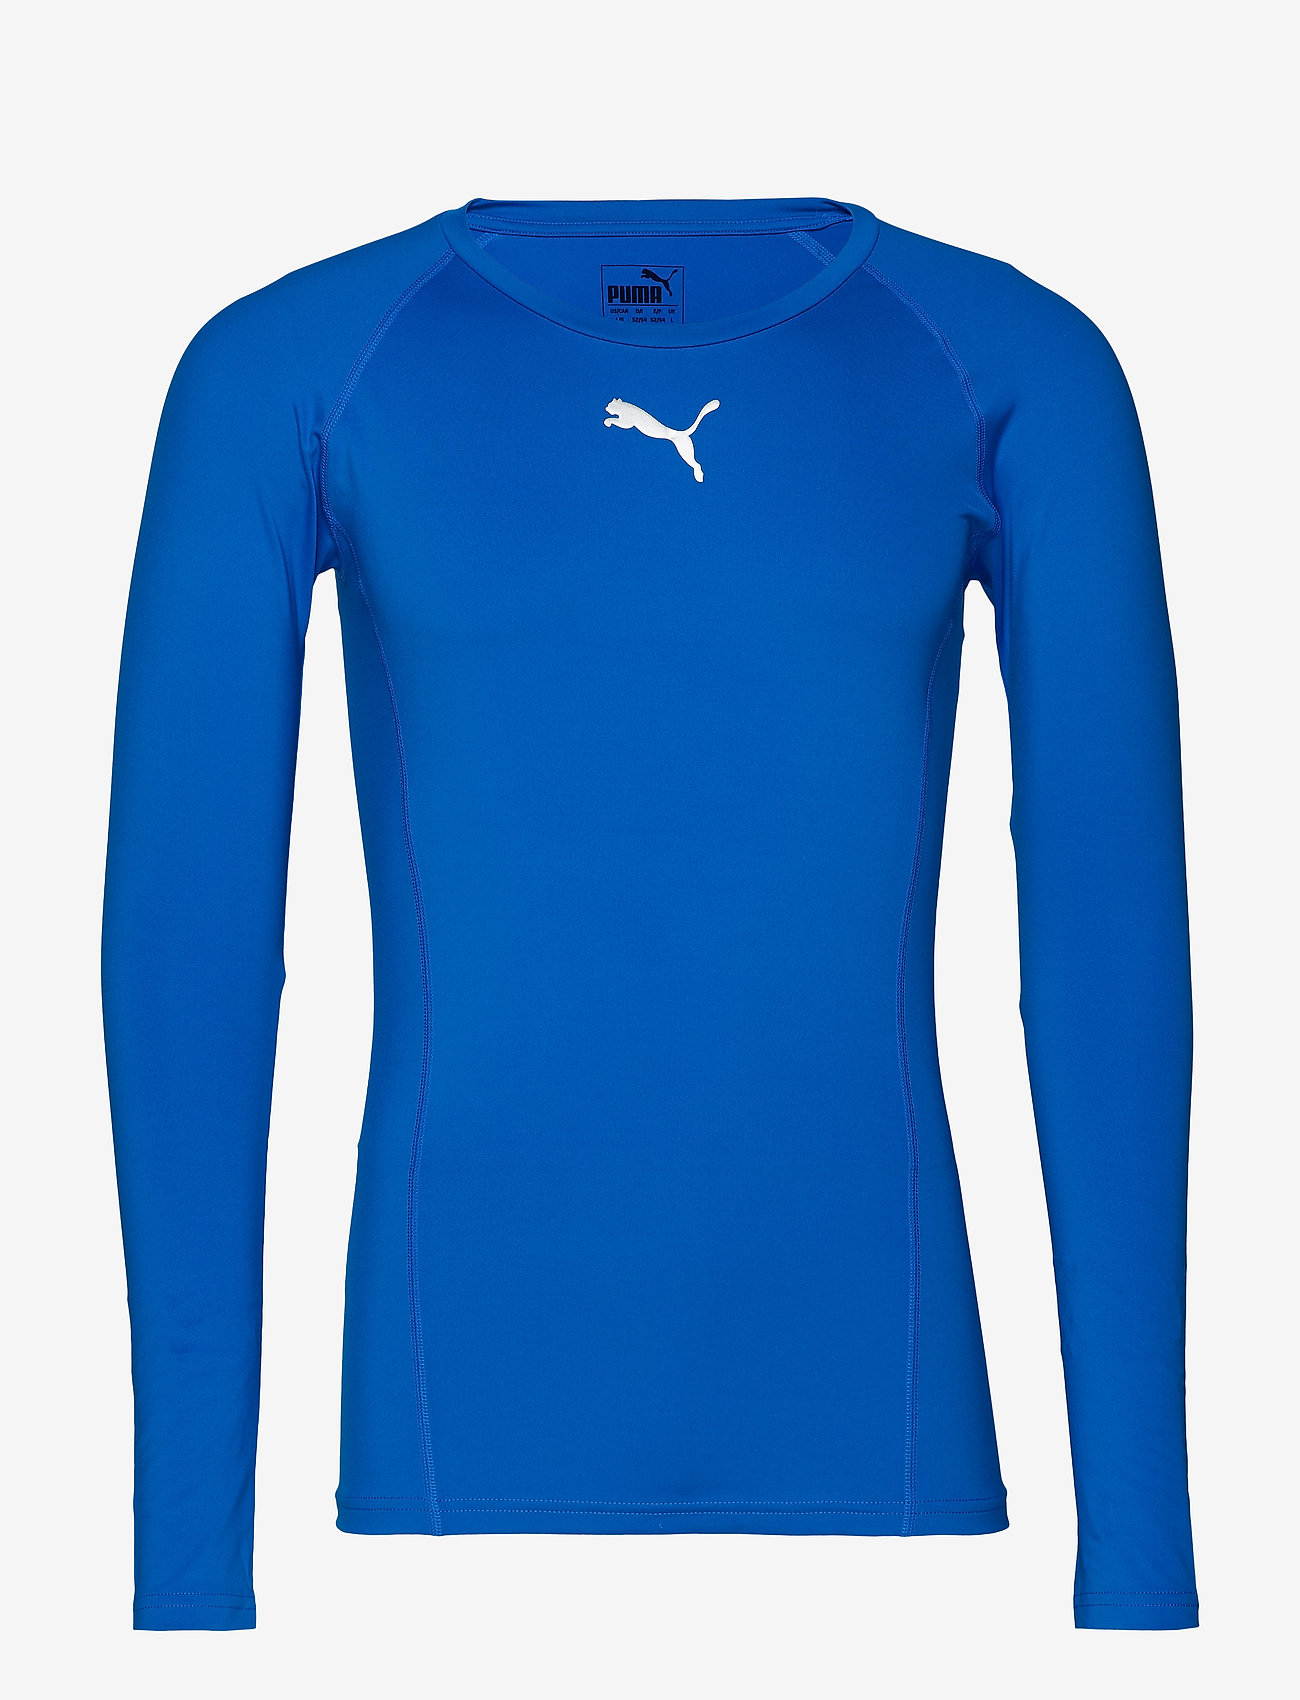 PUMA - LIGA Baselayer Tee LS - football shirts - electric blue lemonade - 0